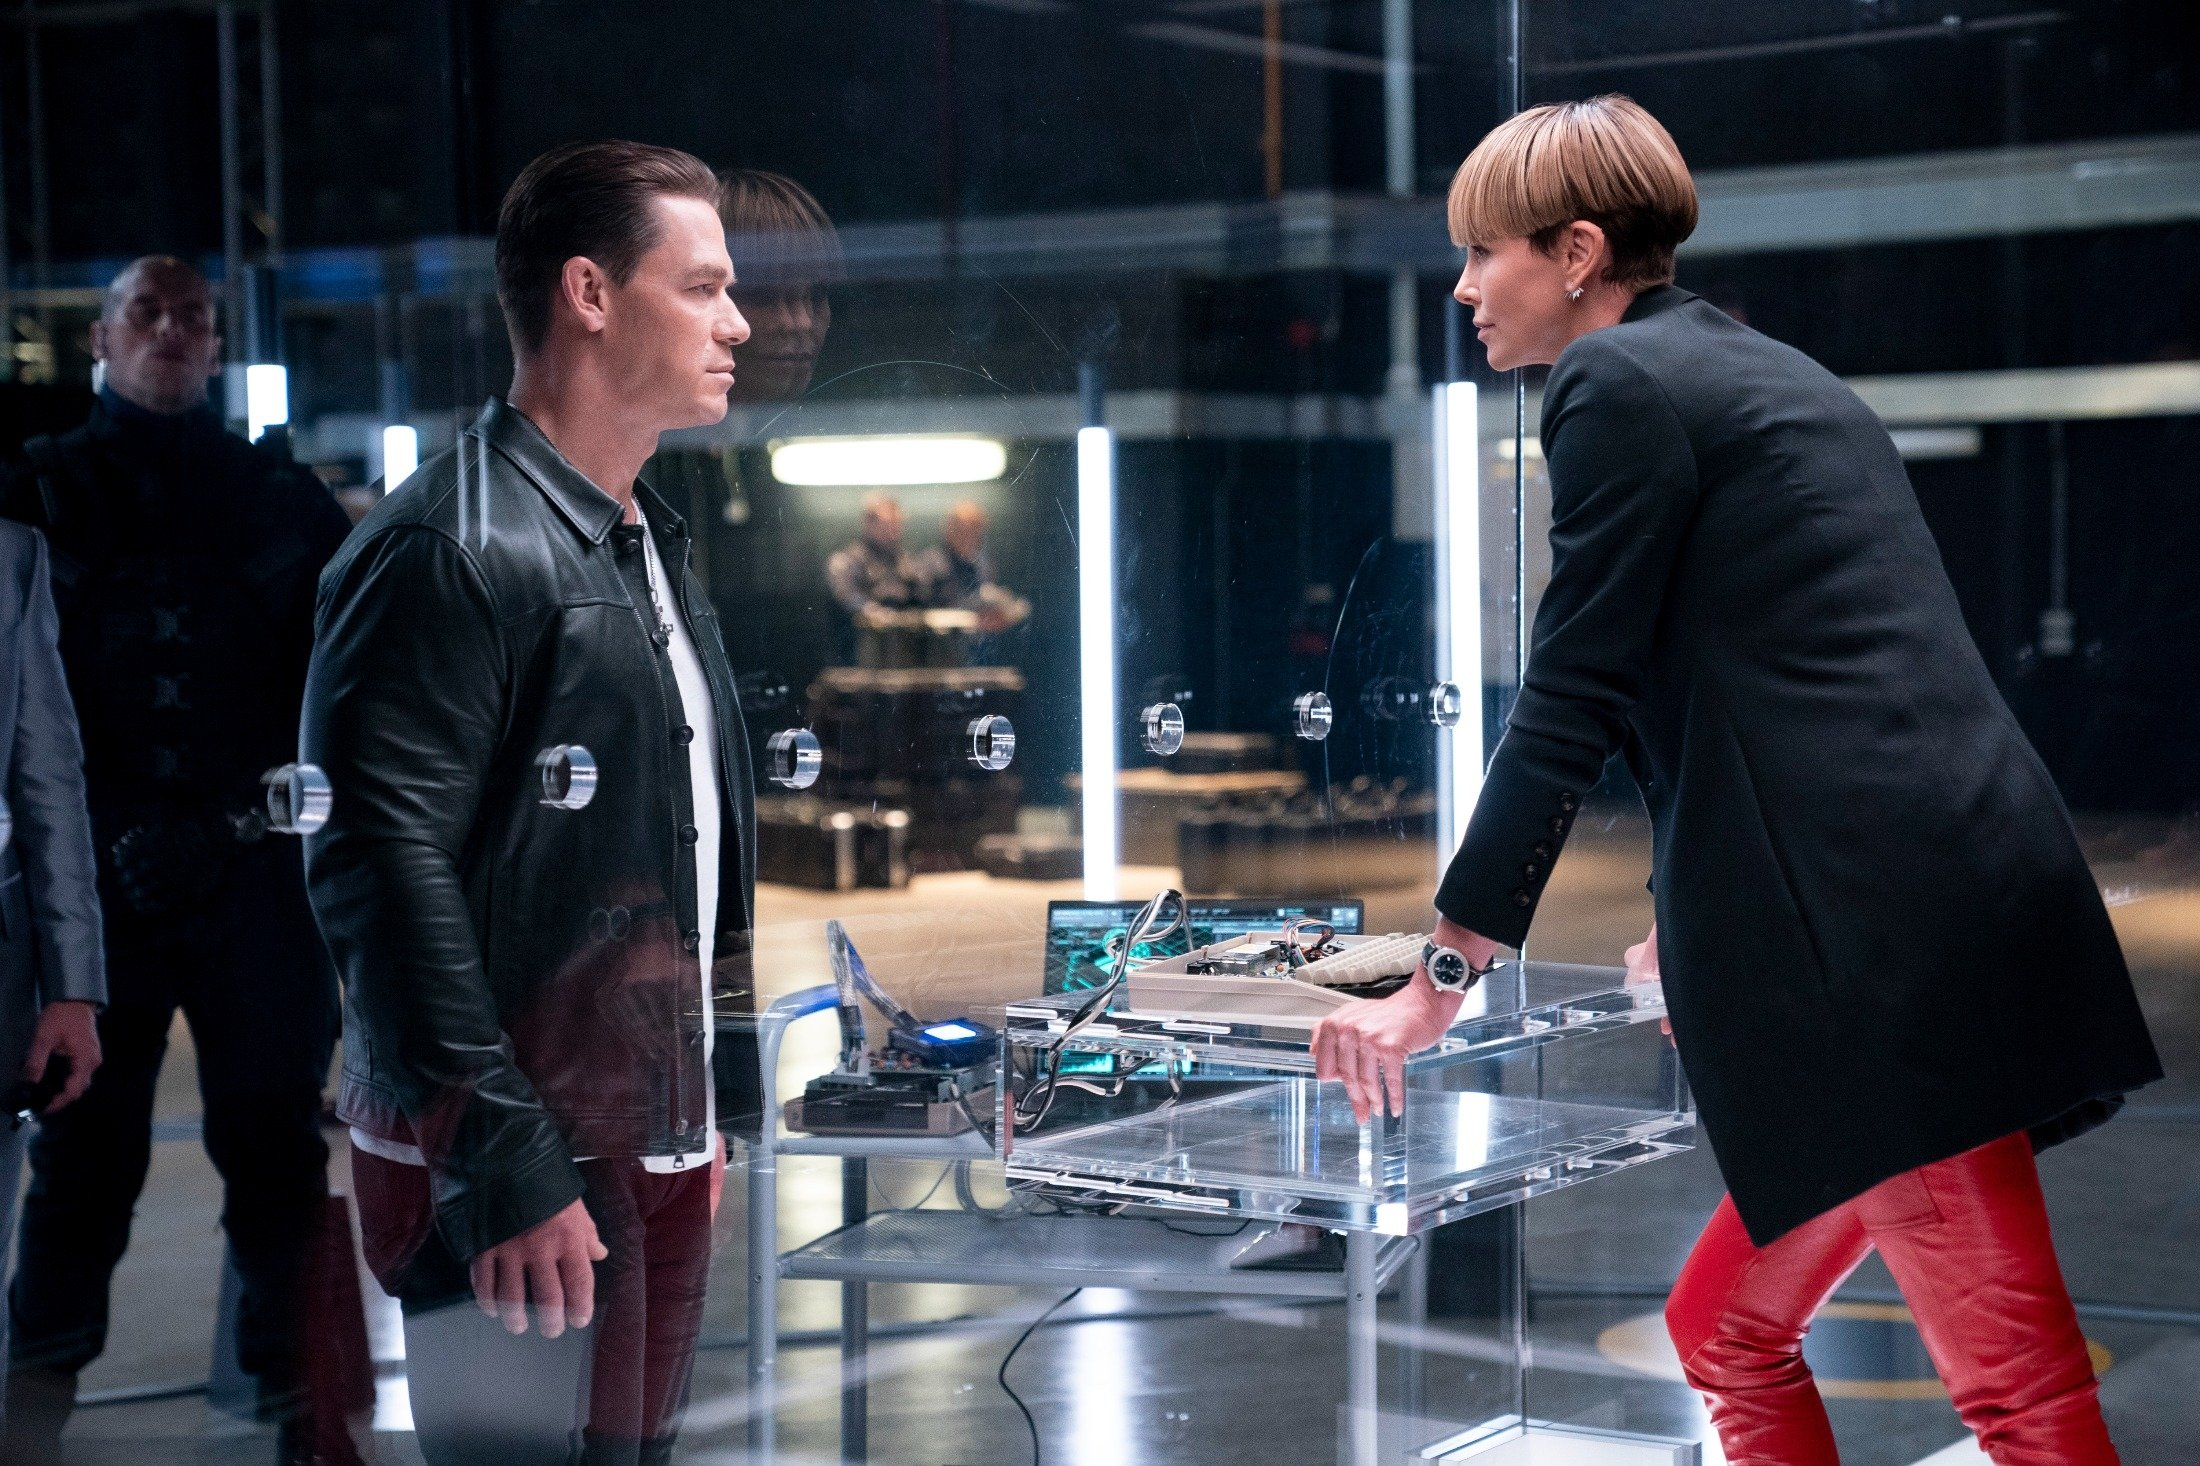 John Cena (L) and Charlize Theron have a conversation, in a scene from the movie'F9: The Fast Saga.' (Universal Pictures via AP)